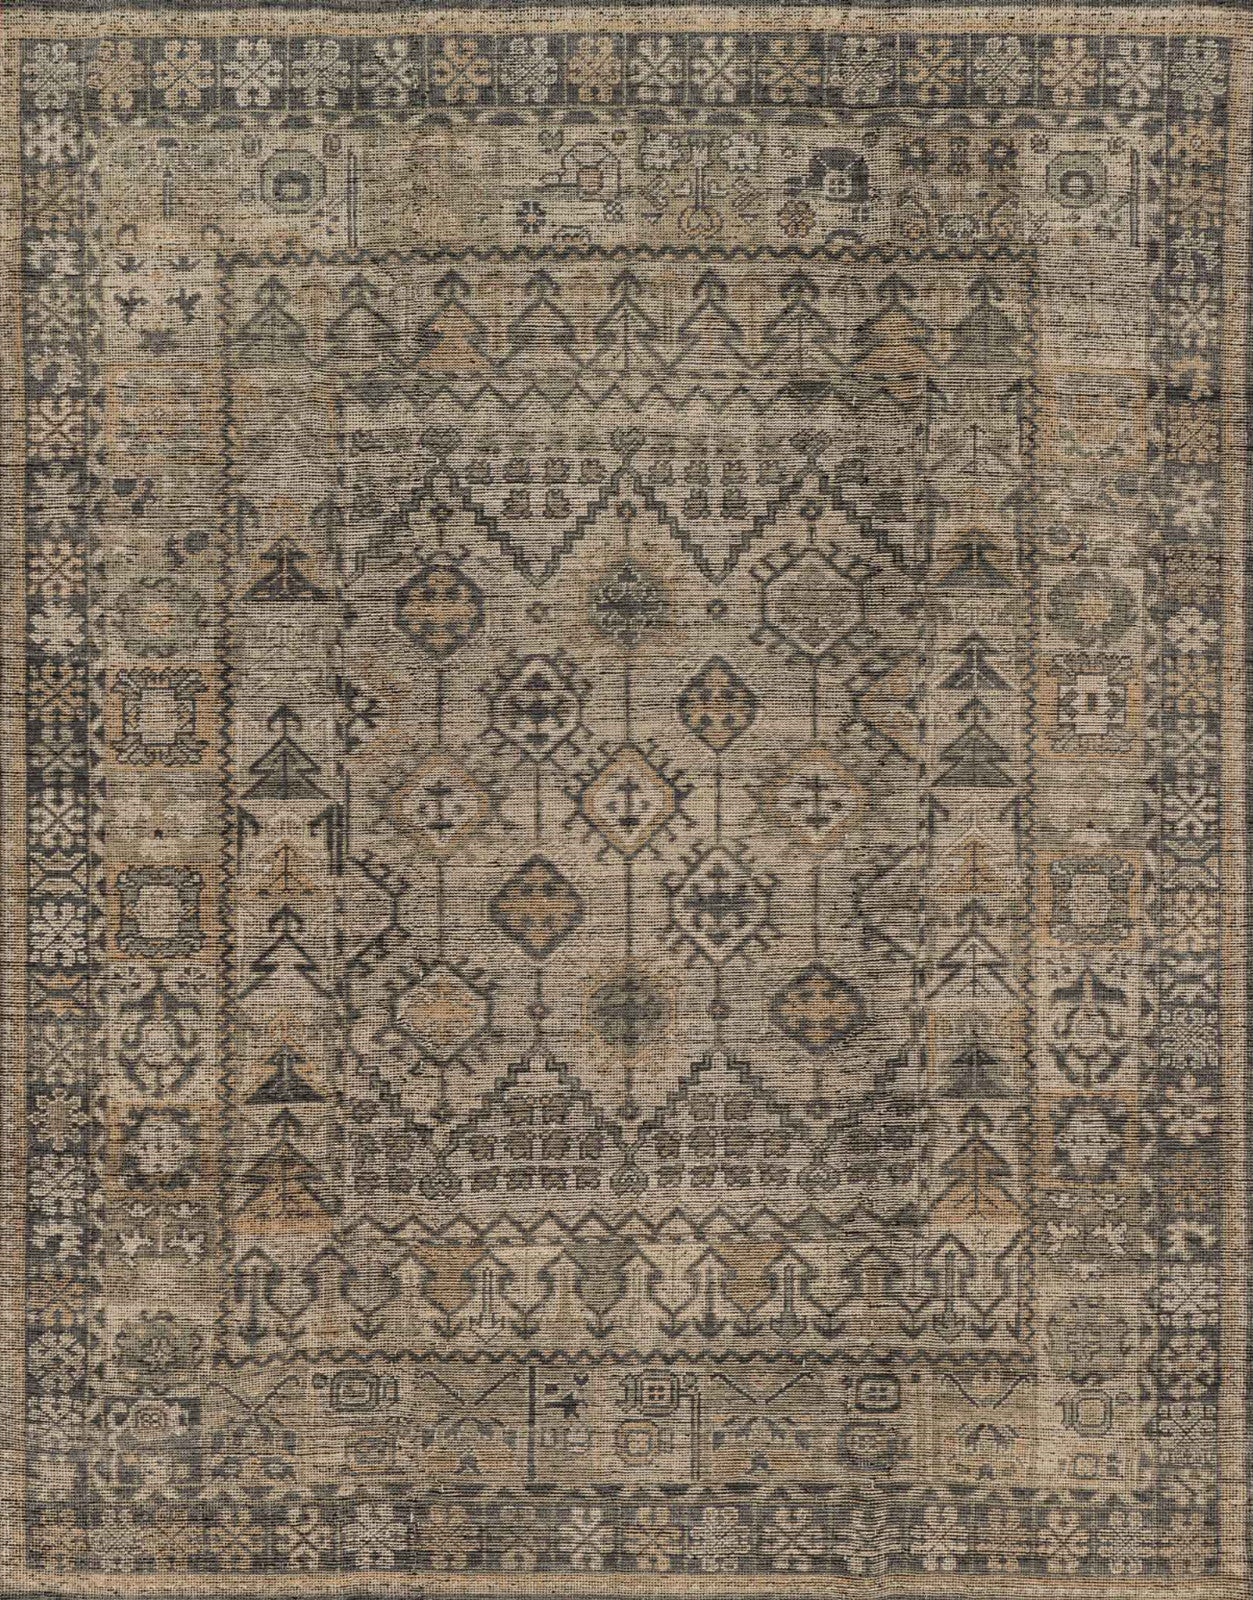 Loloi Heirloom HQ-06 Bone/Charcoal Area Rug